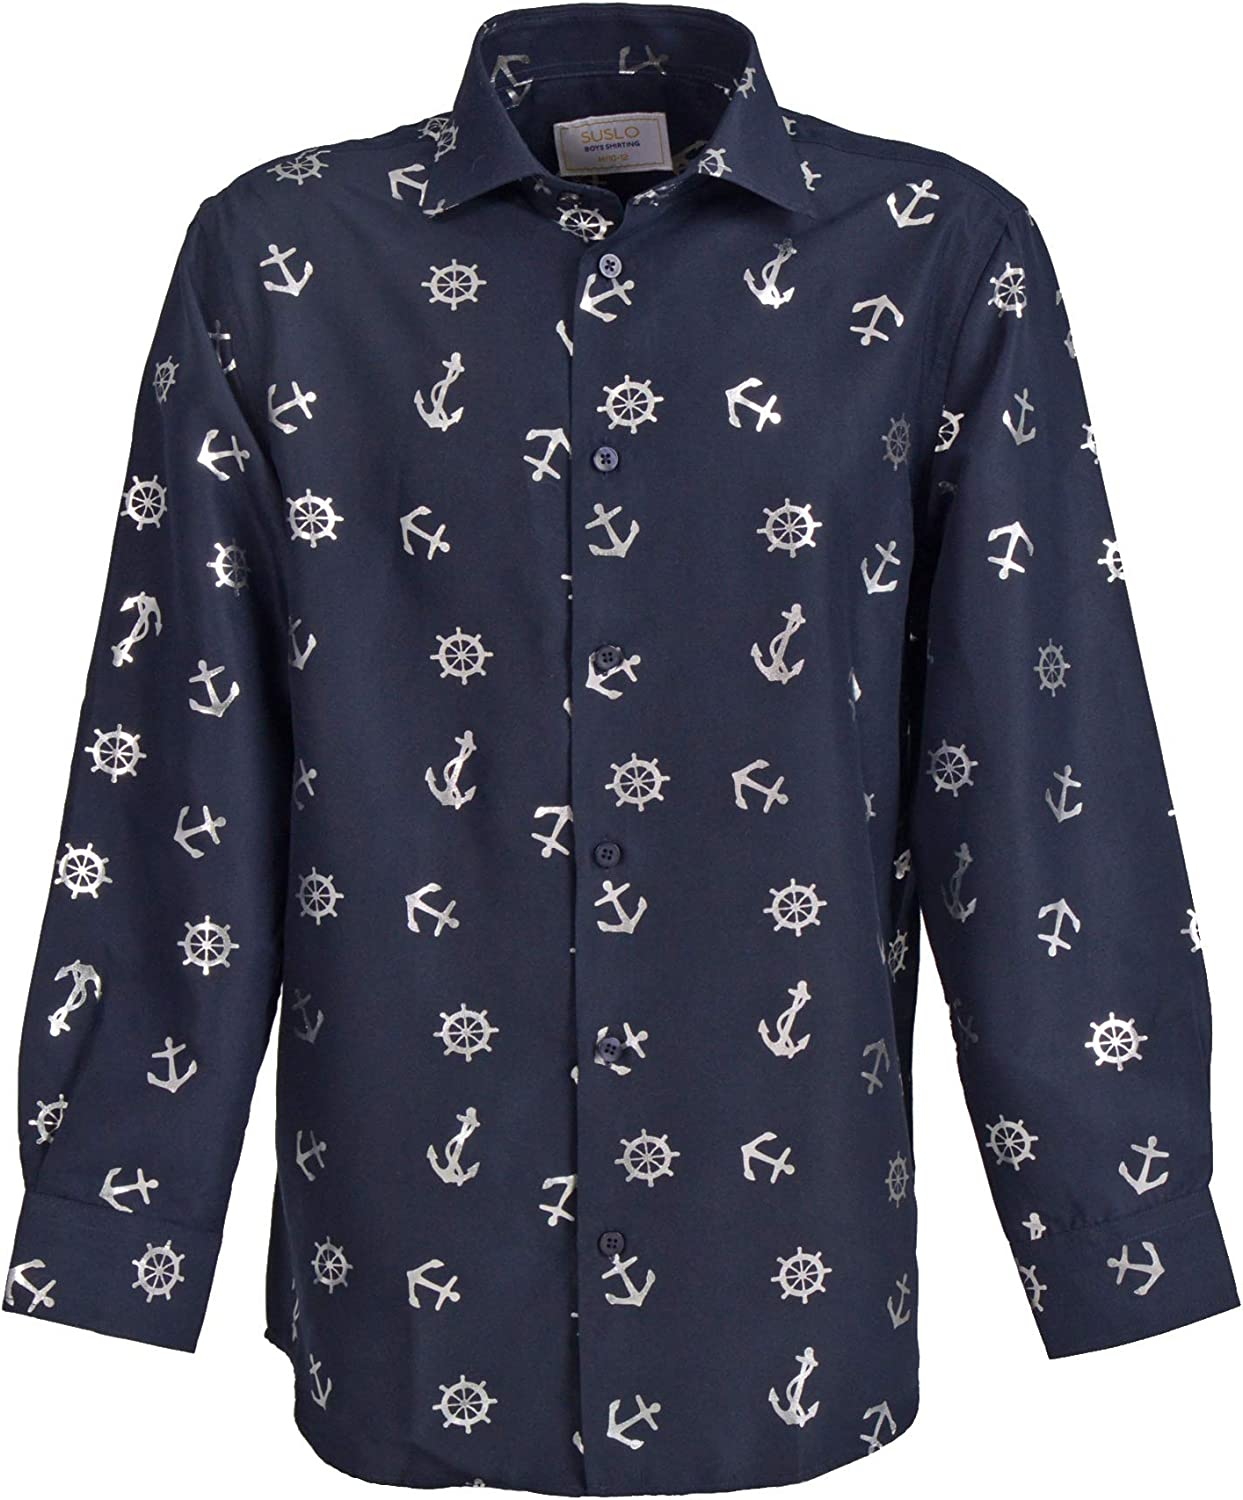 Suslo Couture Boys Button Down Classic Collared Casual Long Sleeve Shirt